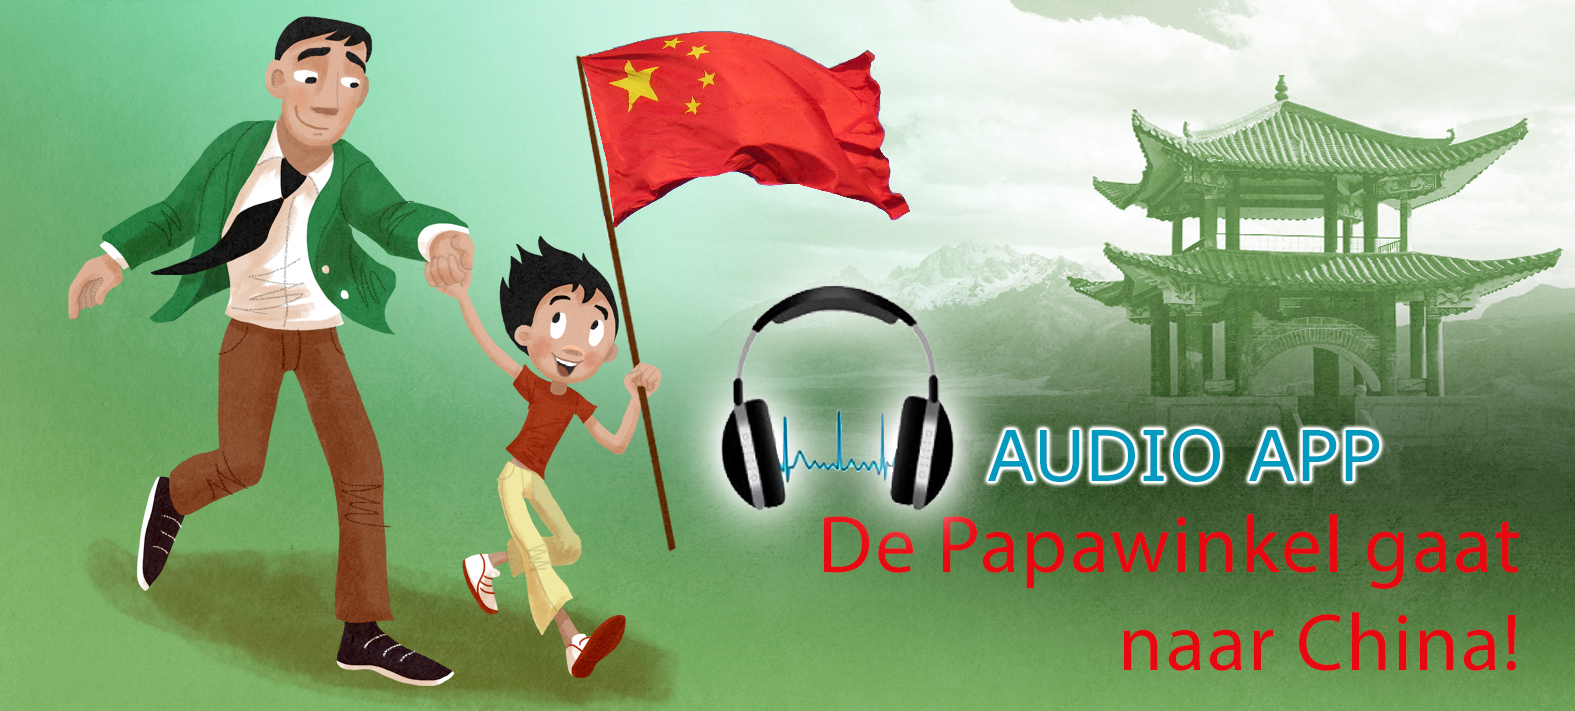 blogplaatje-papawinkel-china-audio.jpg